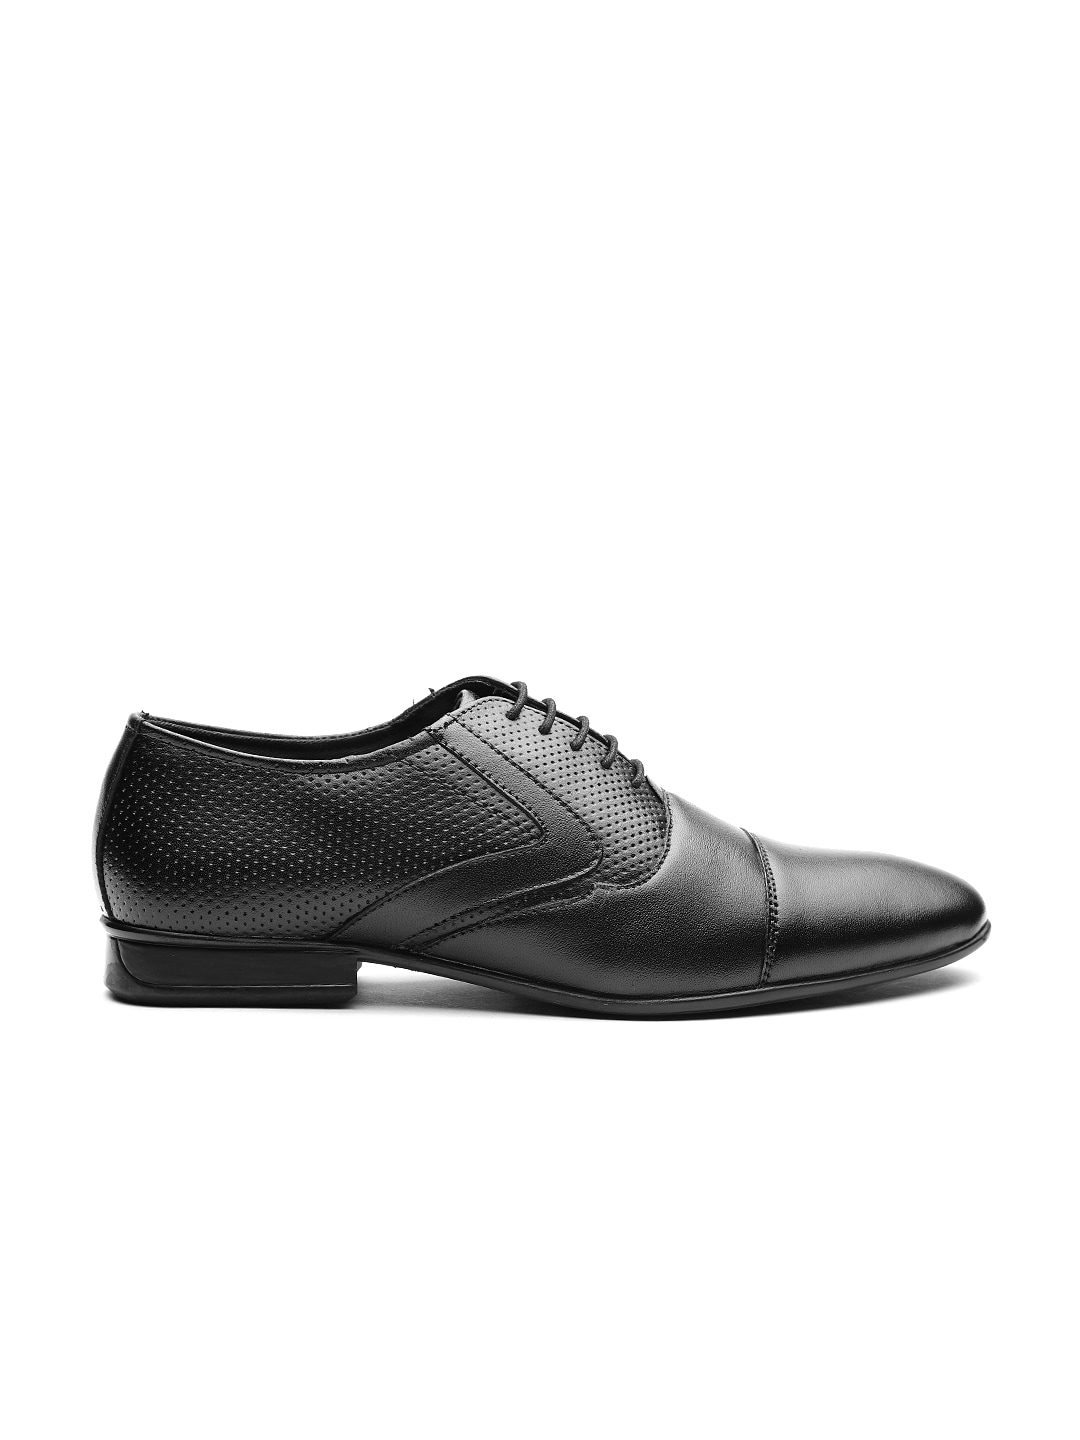 6cdfcfcaf5a Oxford Shoes - Buy Oxford Shoes online in India